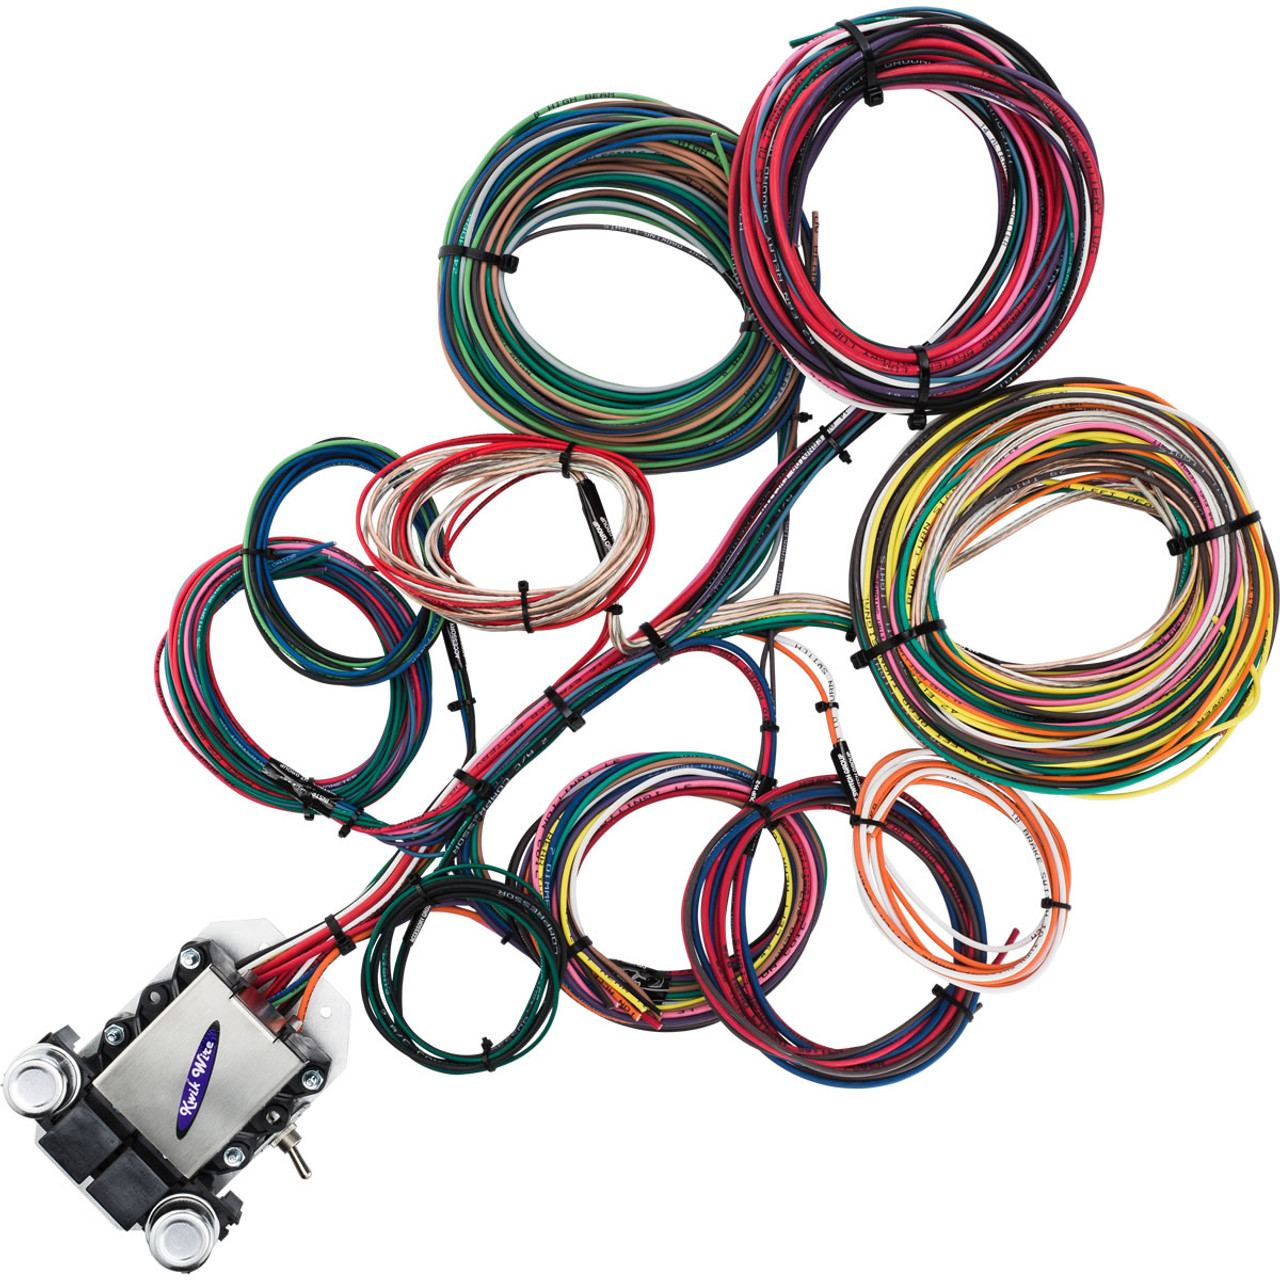 14 circuit ford wire harness kwikwire com electrify your ride rh kwikwire com Cable Harness 1949 Cadillac Wiring Harness New